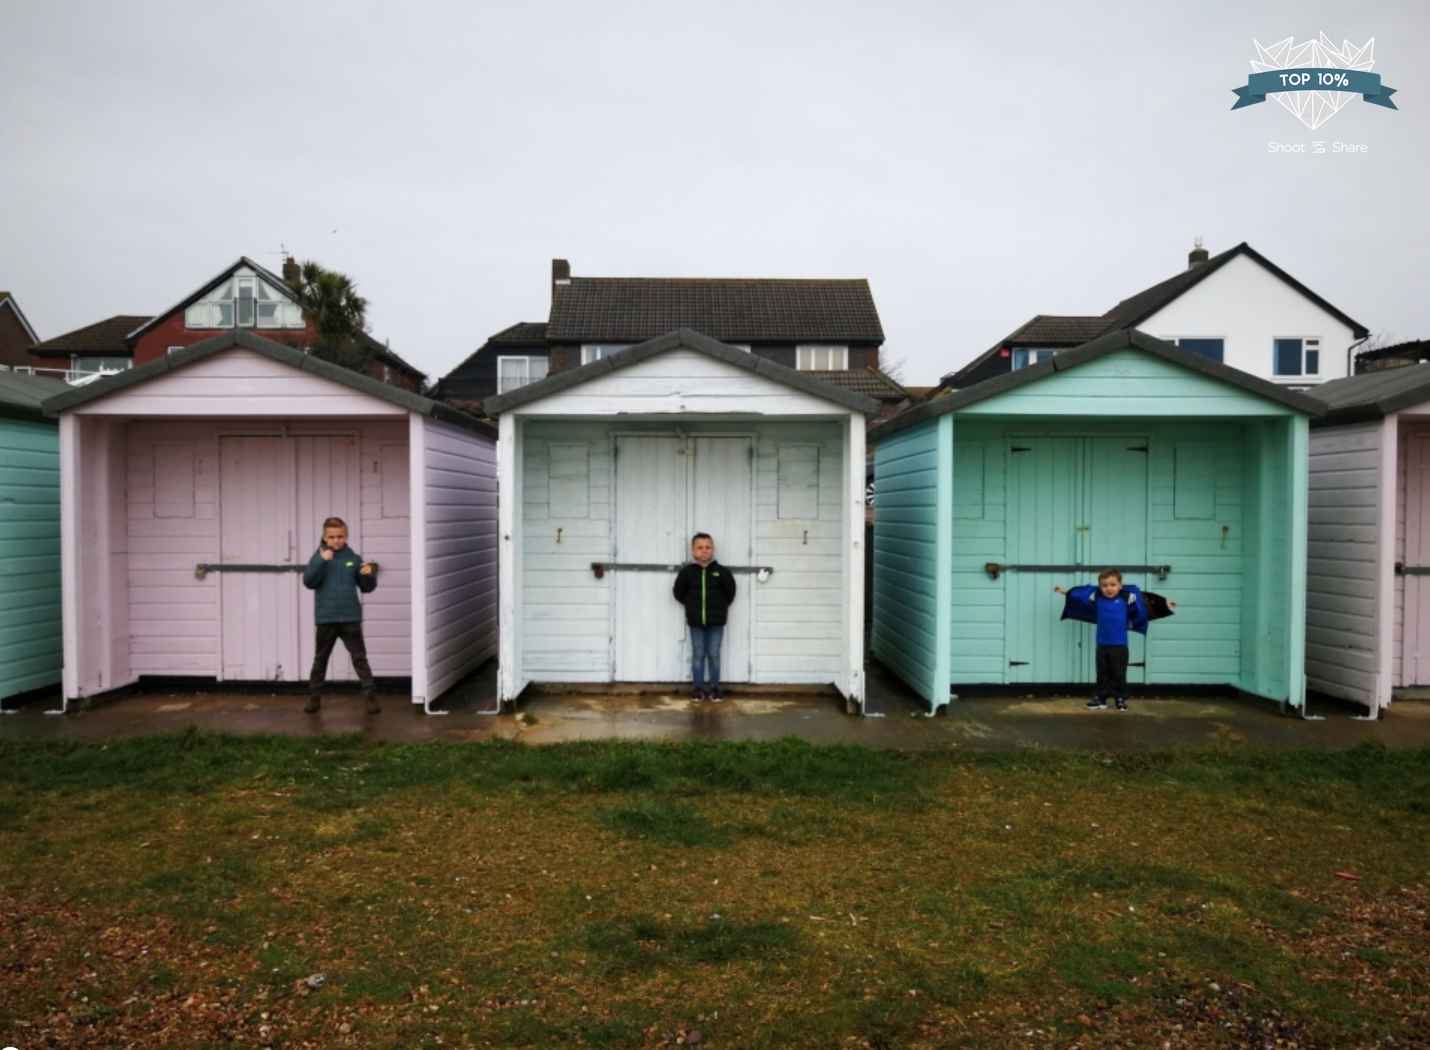 The pastel beach huts Eastney, Portsmouth, UK